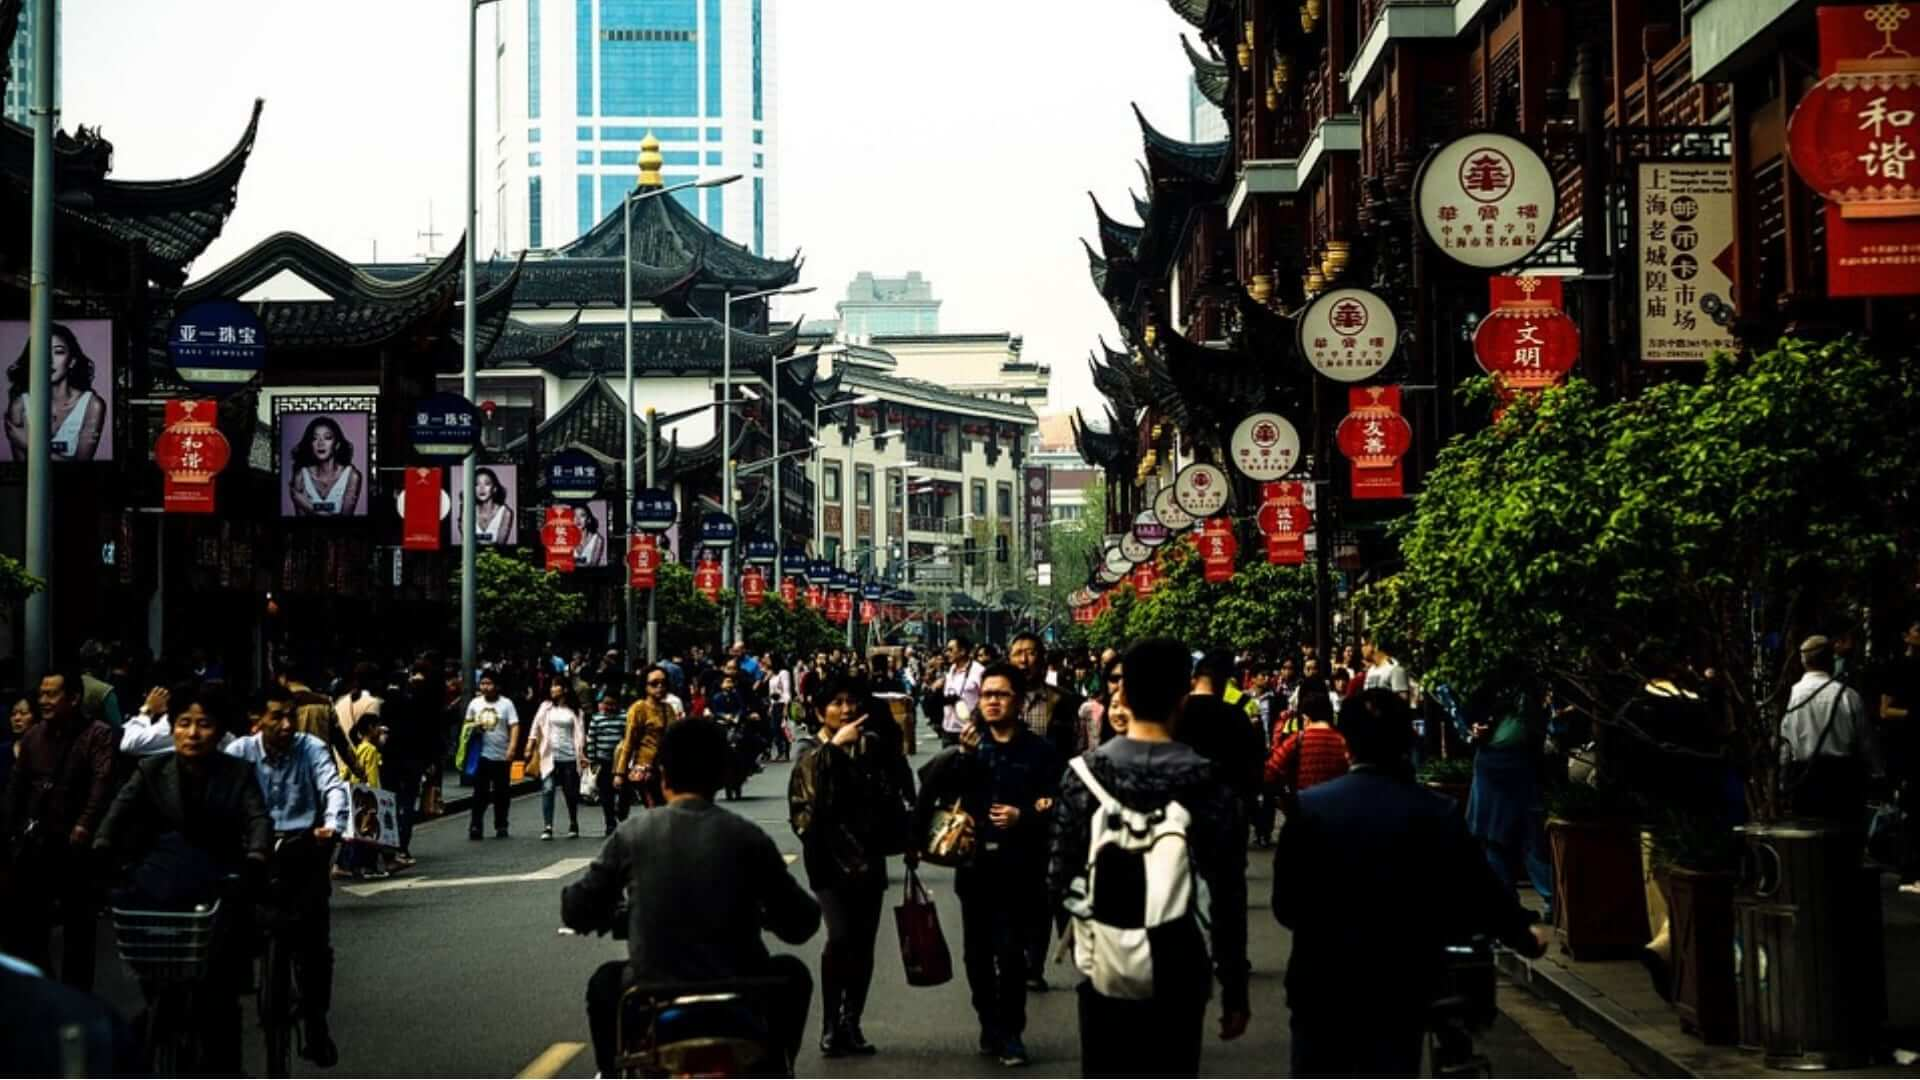 People are walking in a street with old Chinese buildings in Shanghai.